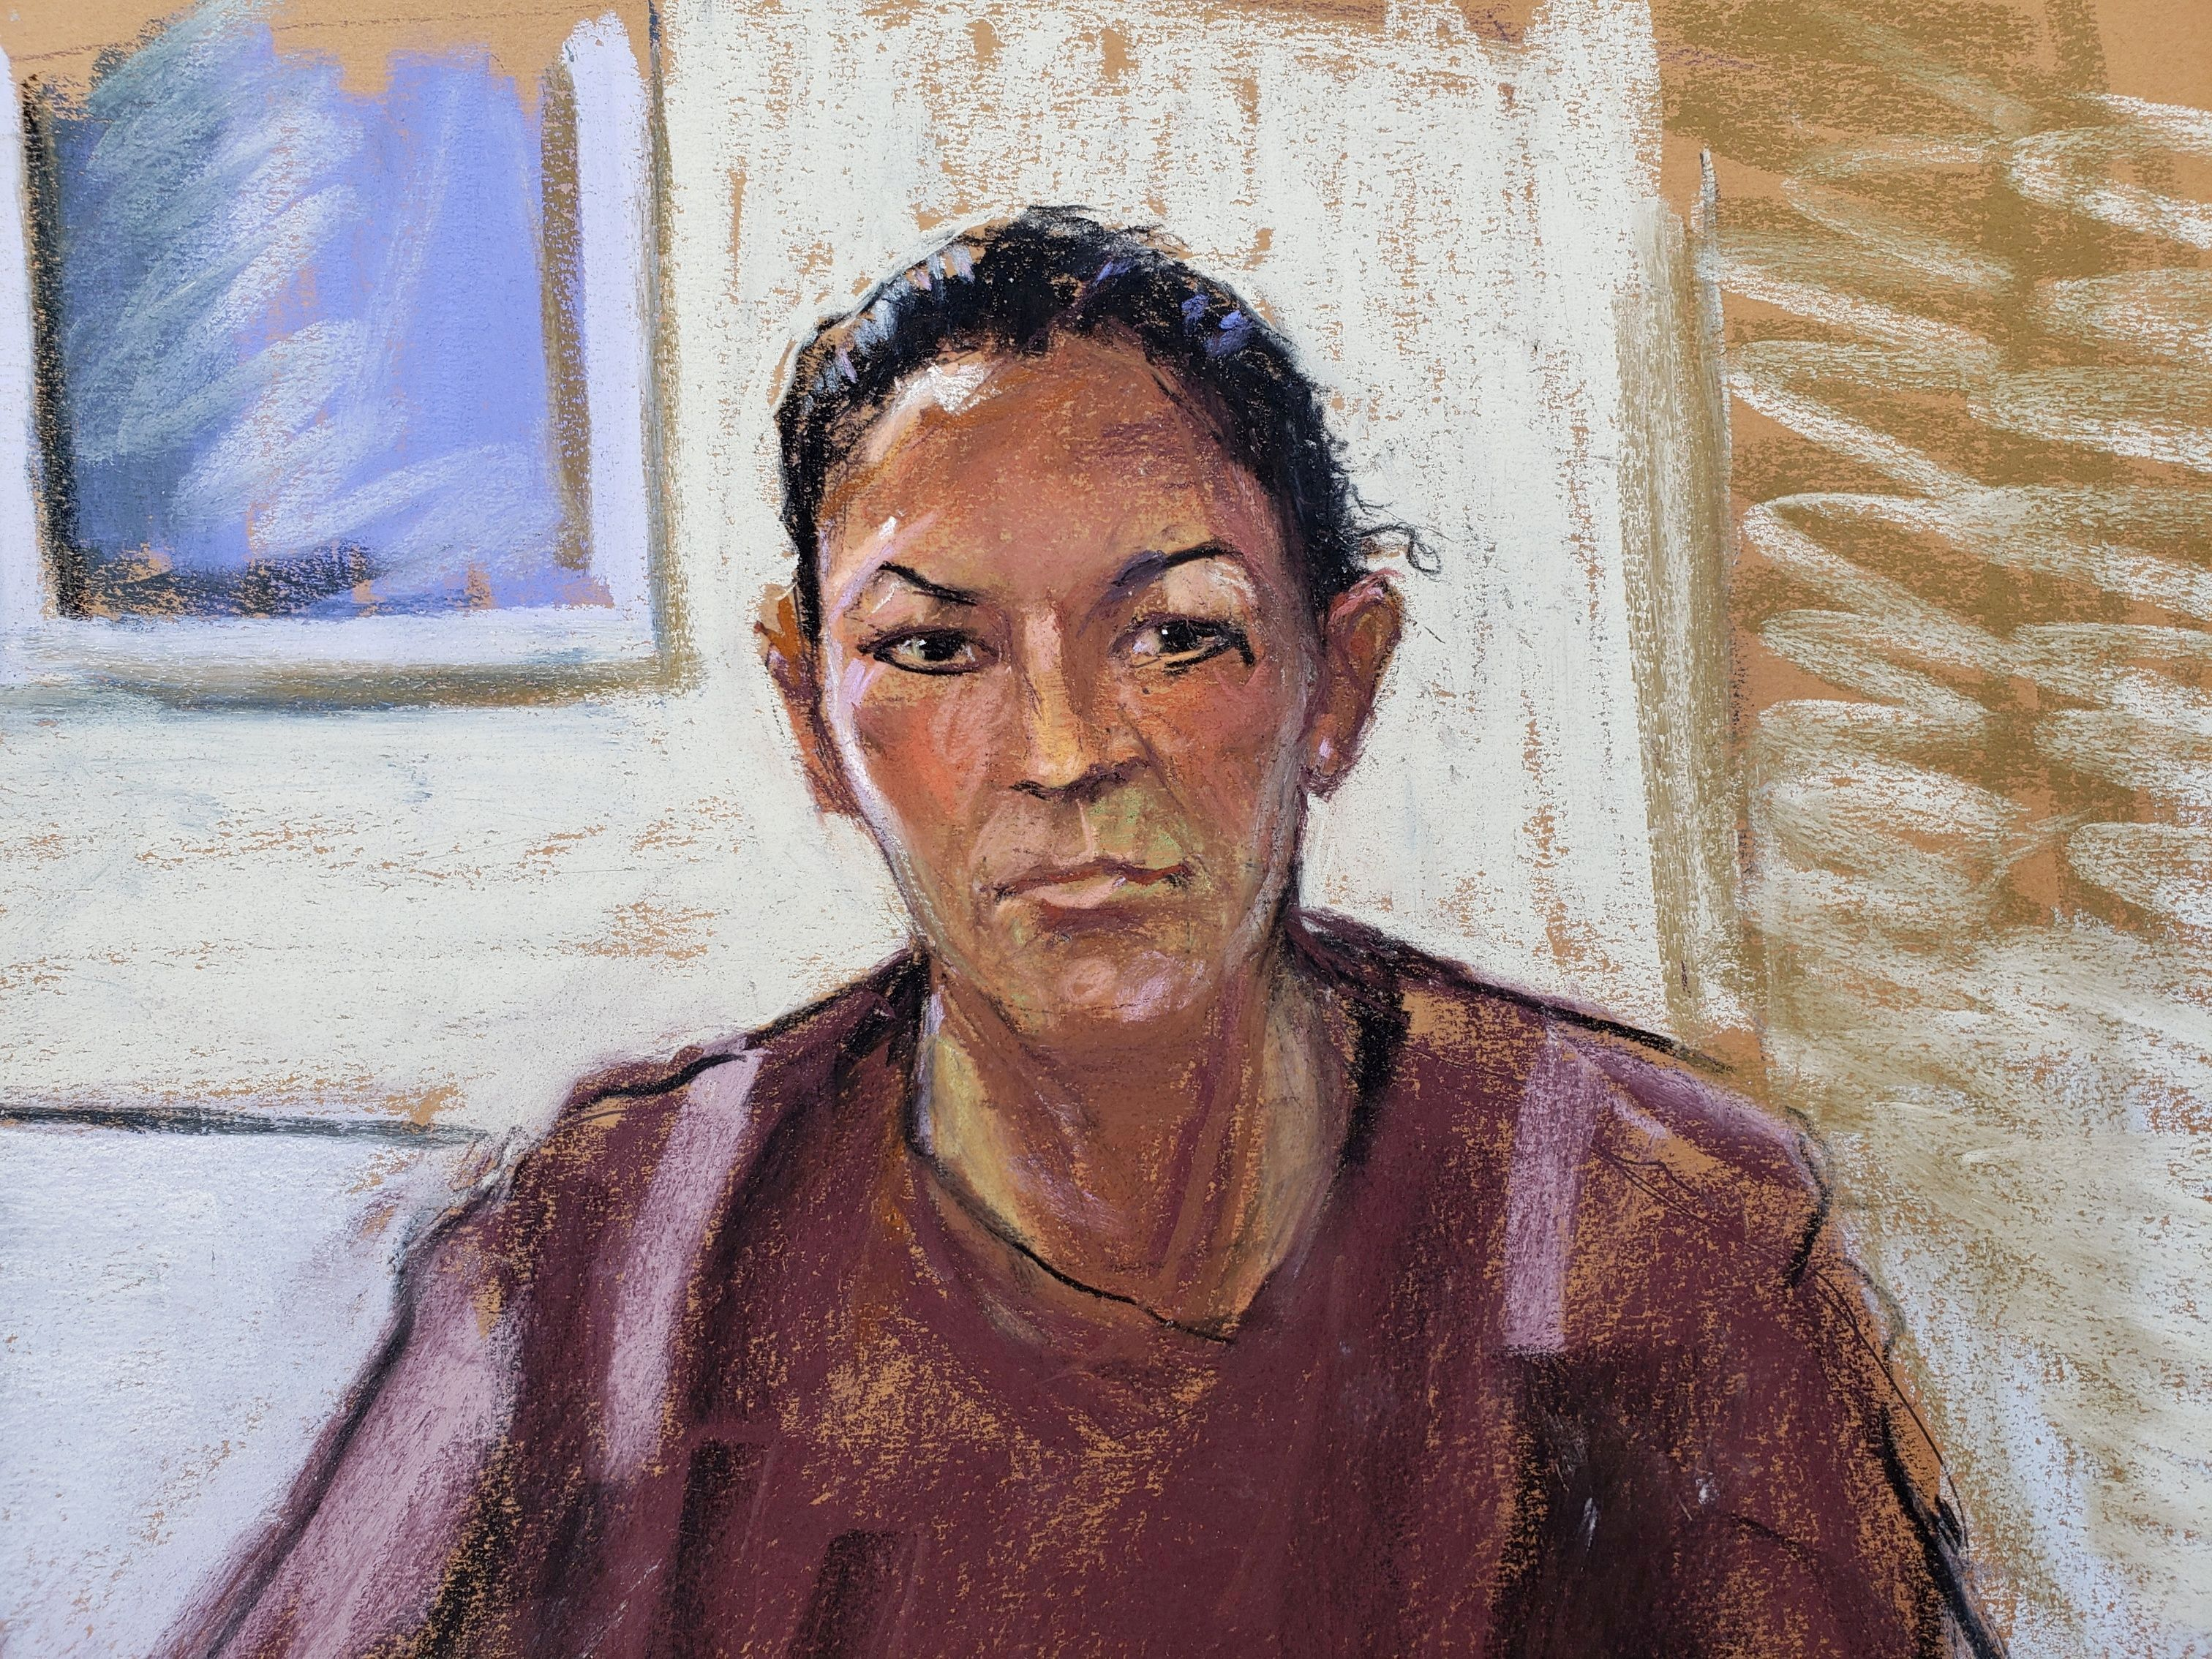 Ghislaine Maxwell appears via video link during her arraignment hearing in Manhattan Federal Court, New York, U.S. July 14, 2020 in this courtroom sketch. REUTERS/Jane Rosenberg/File Photo